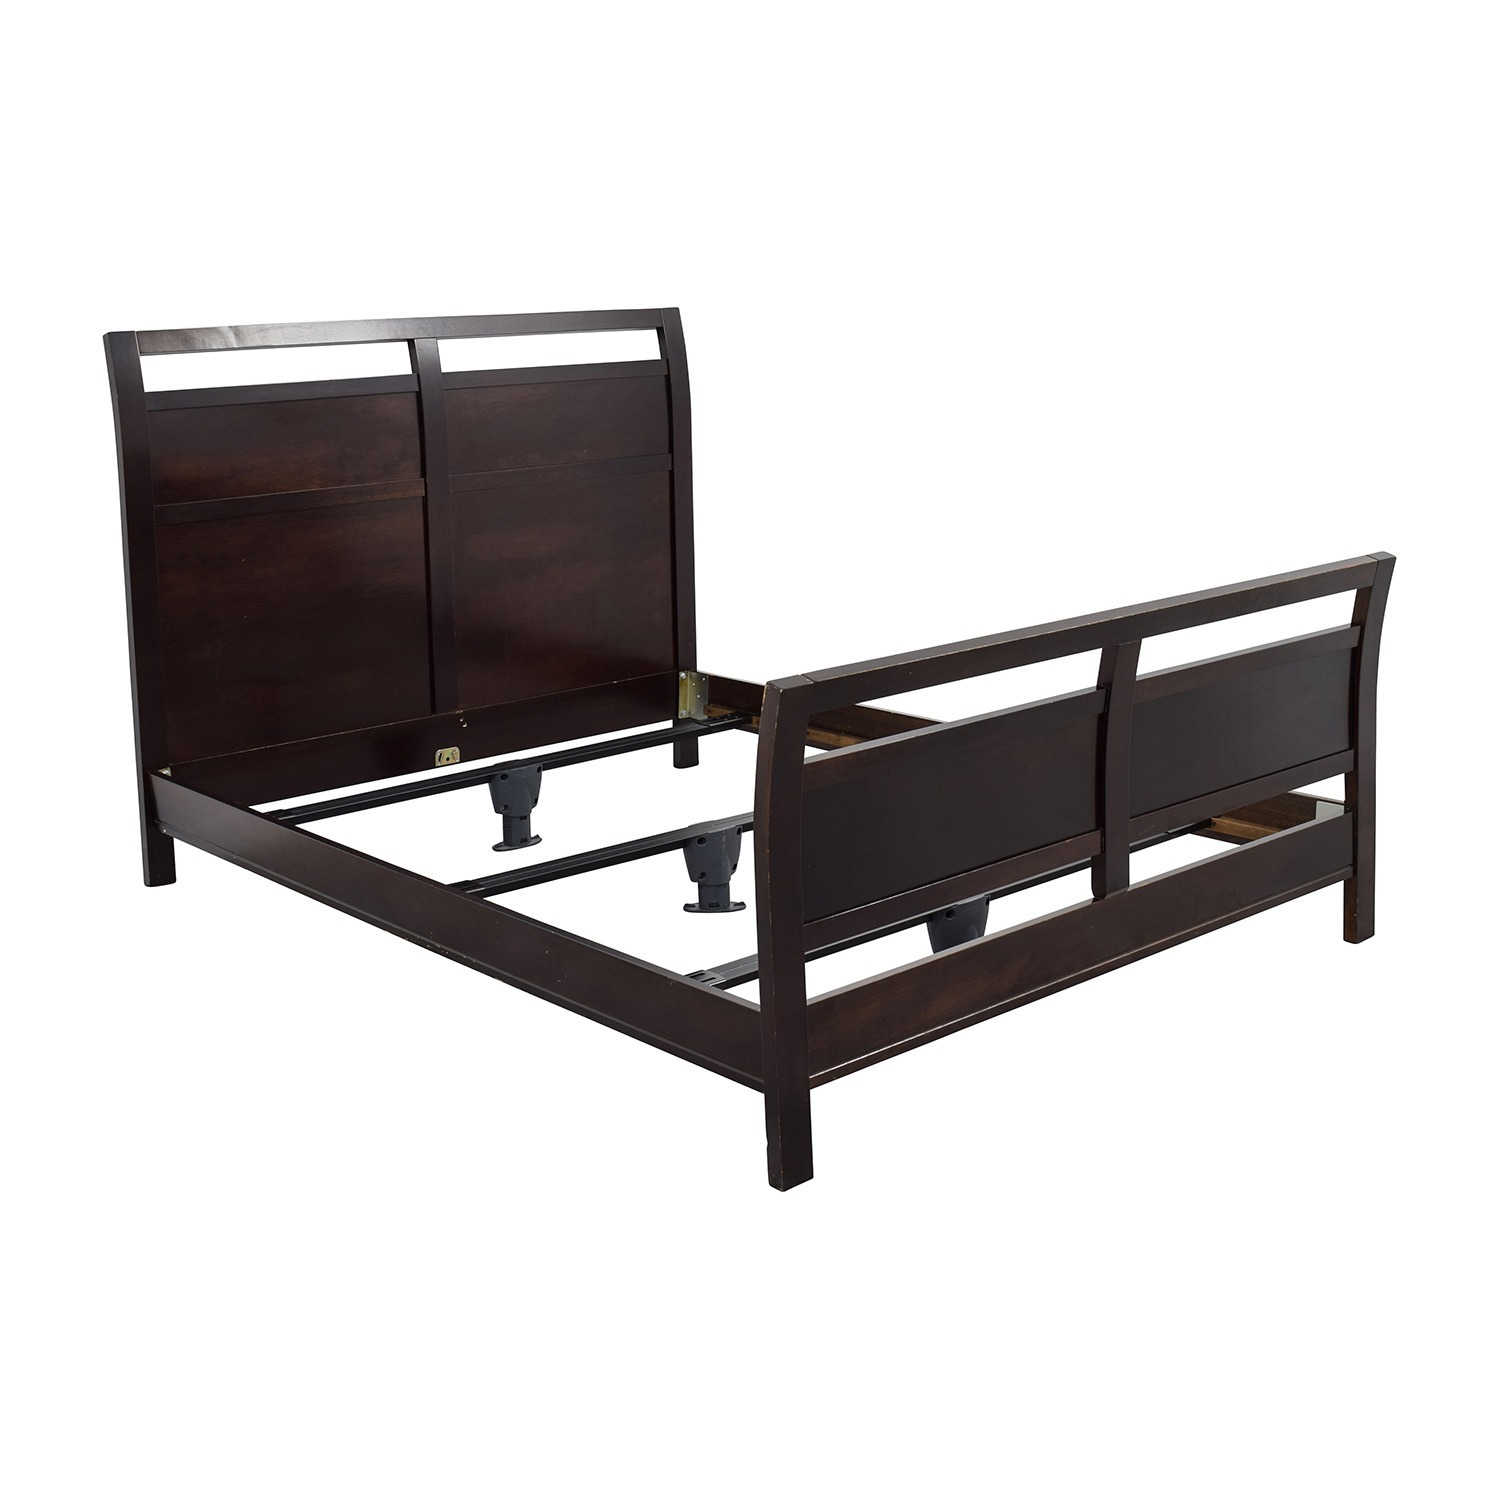 By Design Modern Sleigh Queen Bed w/Slats - image-2